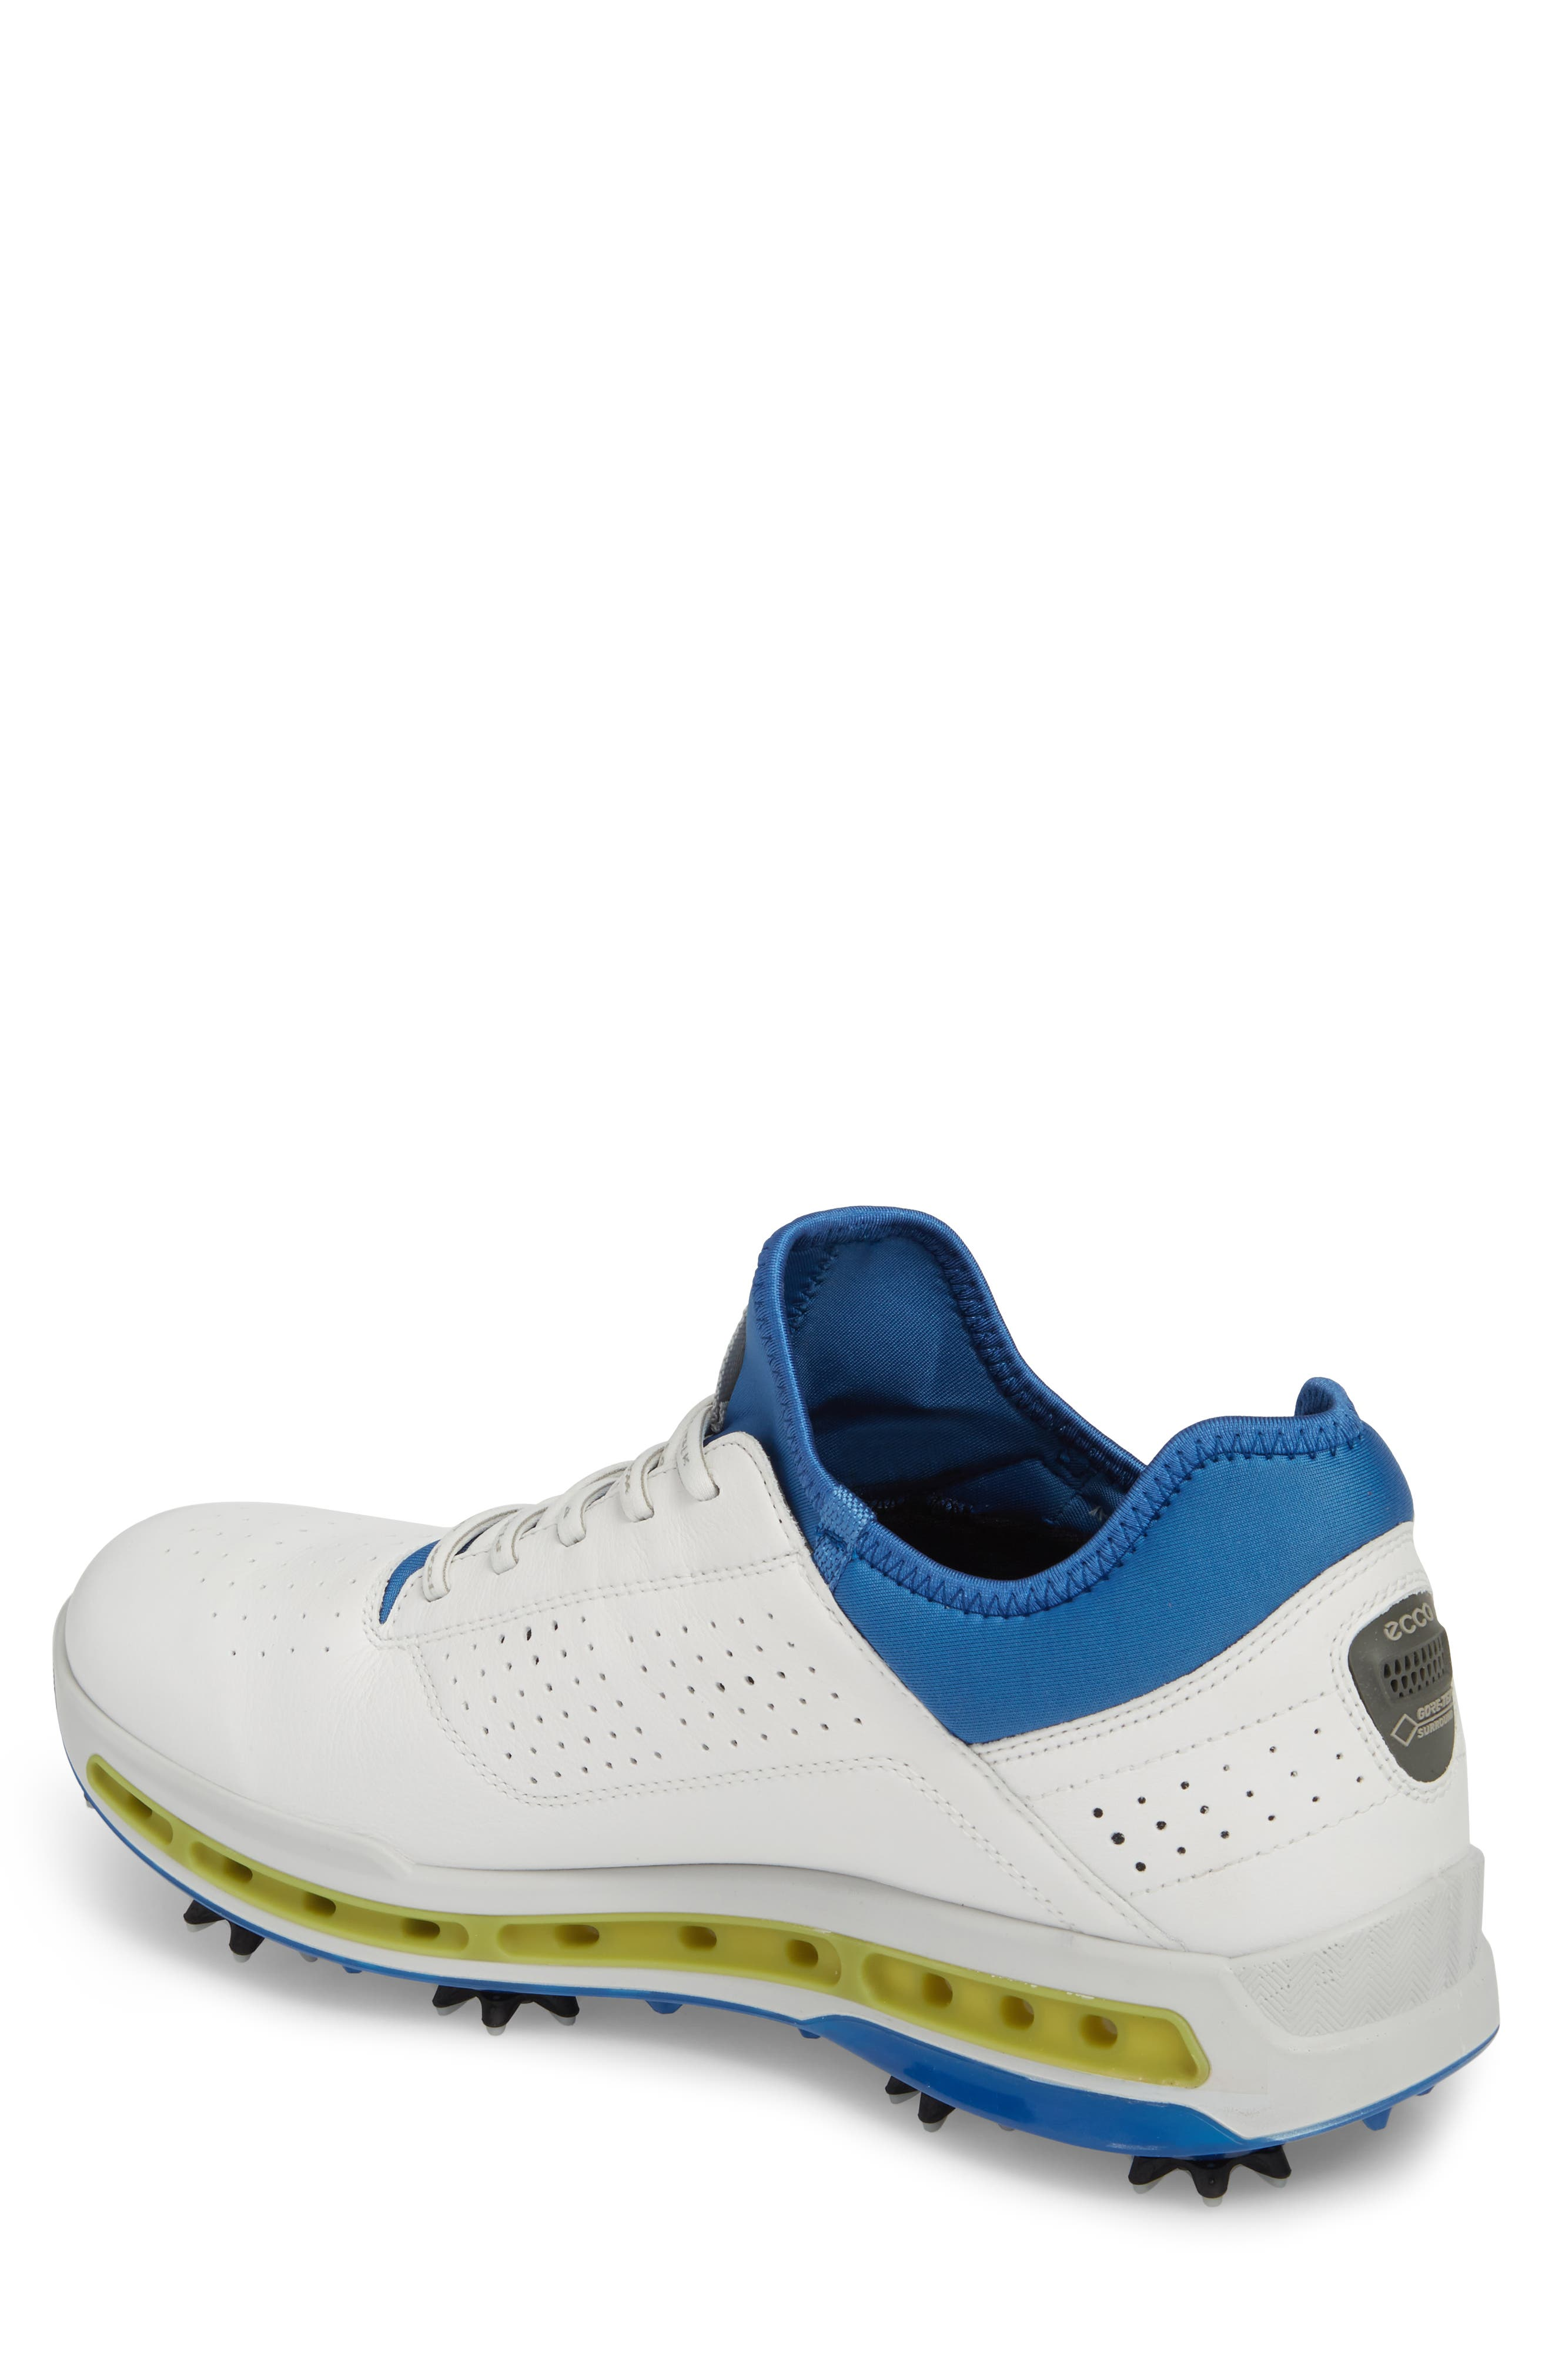 Cool 18 Gore-Tex Golf Shoe,                             Alternate thumbnail 2, color,                             White Leather